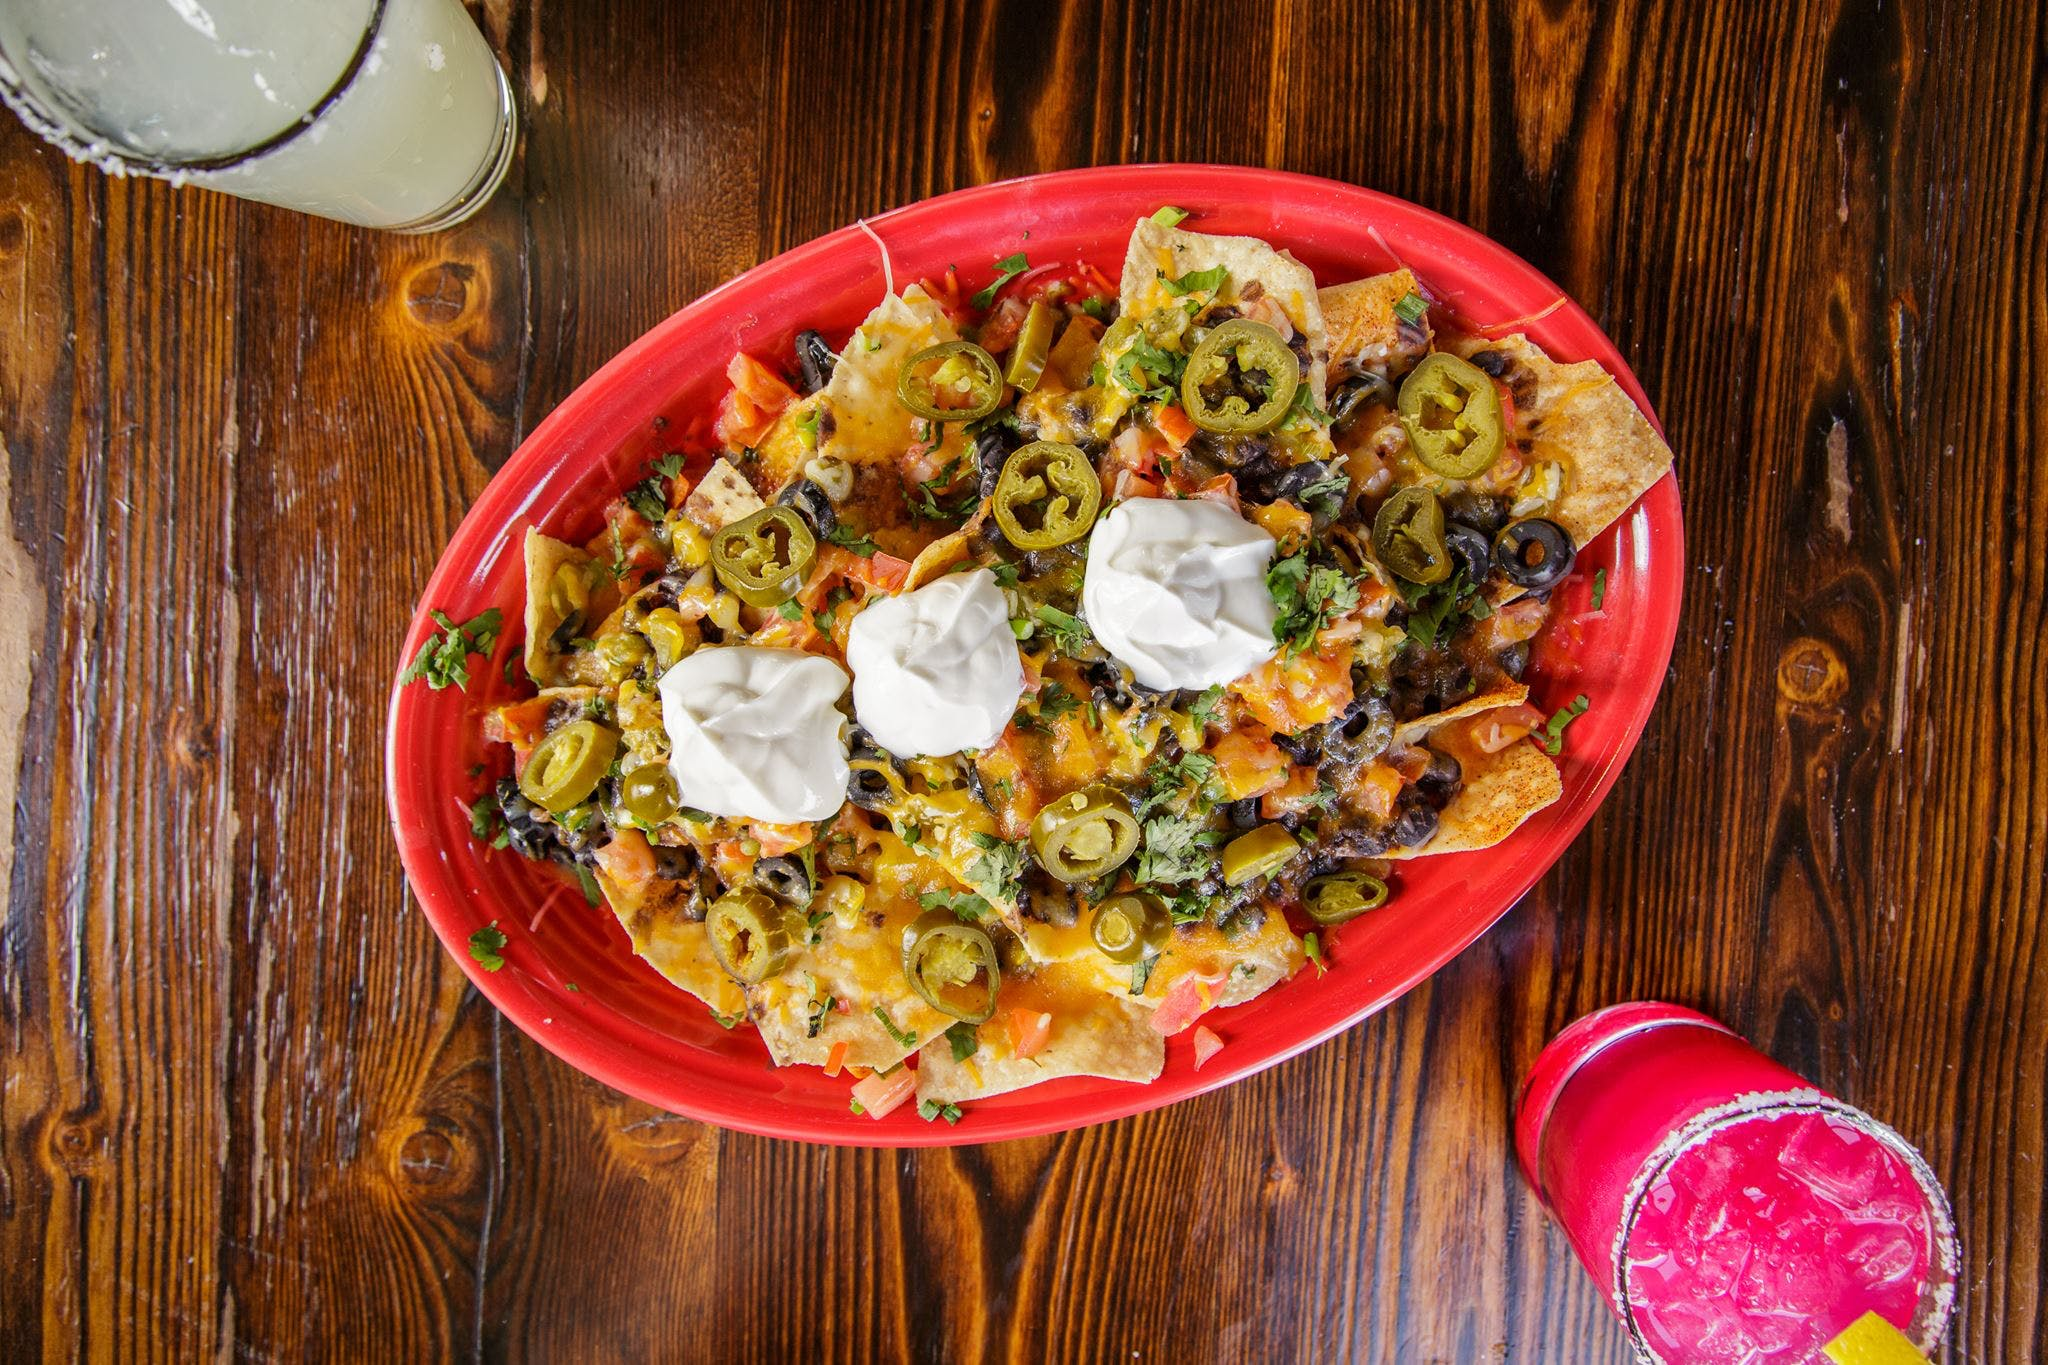 Pasqual's Cantina - Hilldale in Madison - Highlight